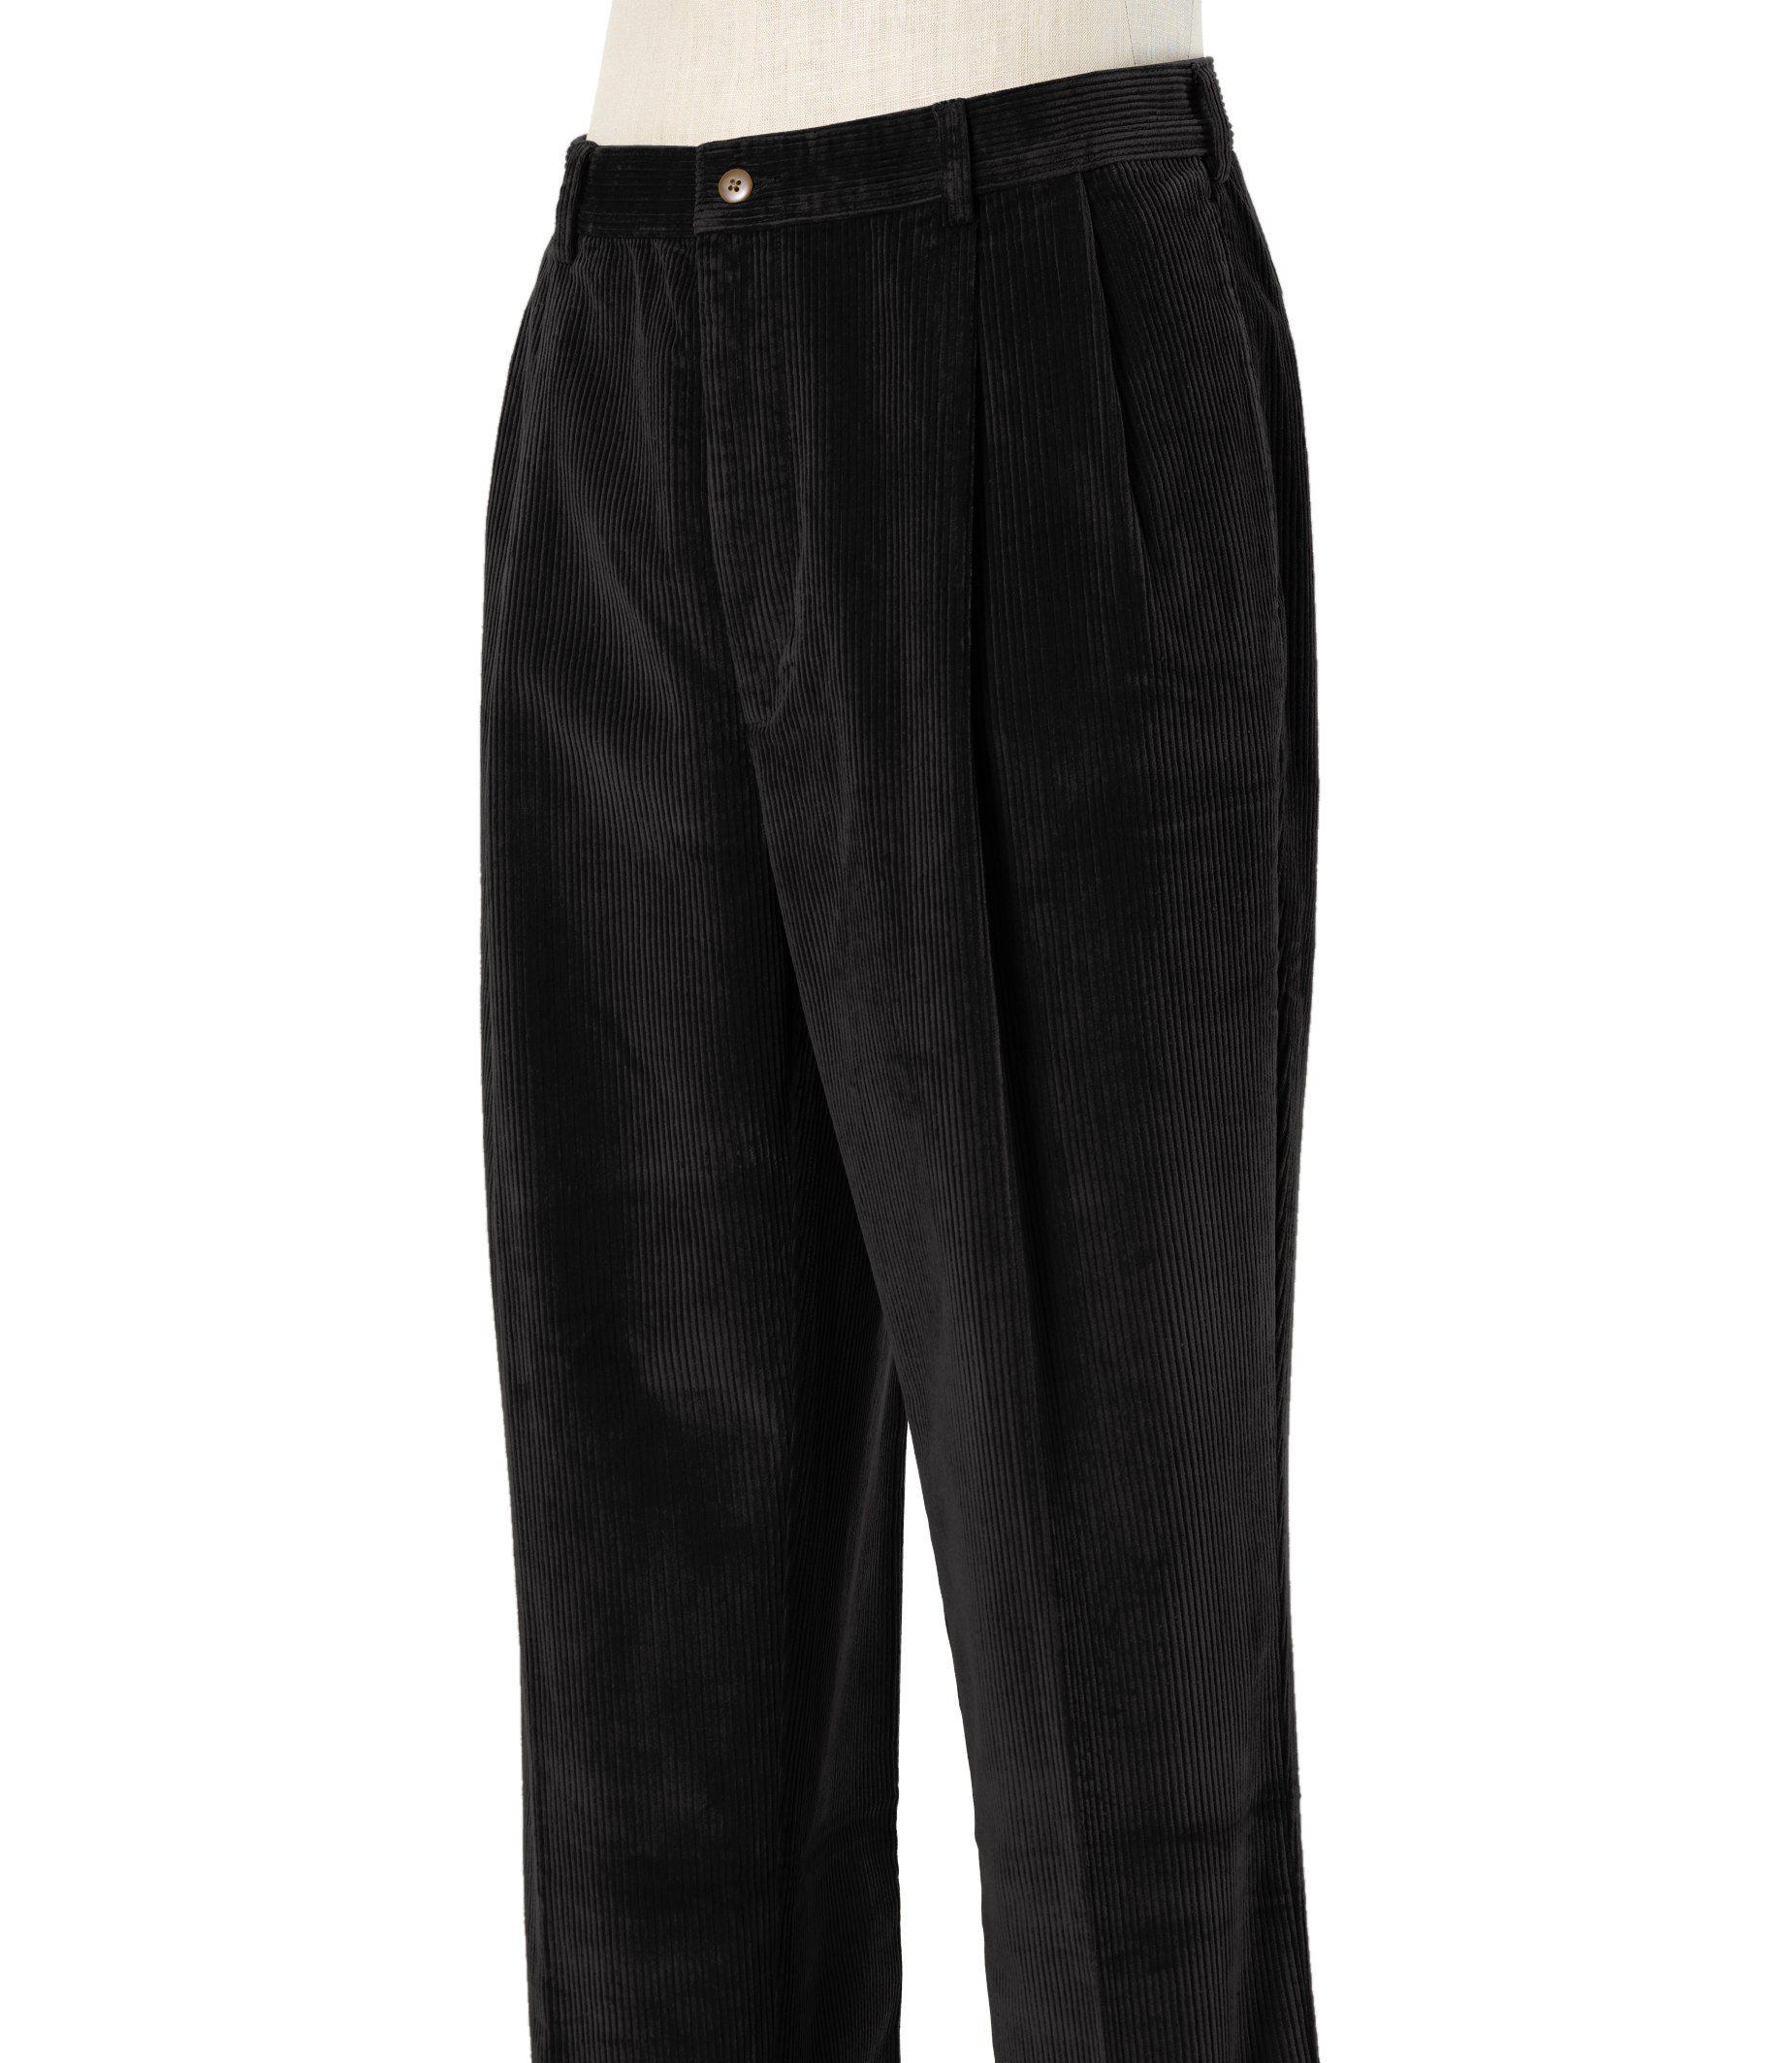 Bank Corduroy Jos A Bank Colorfast Casual Corduroy Pleated Front Pants